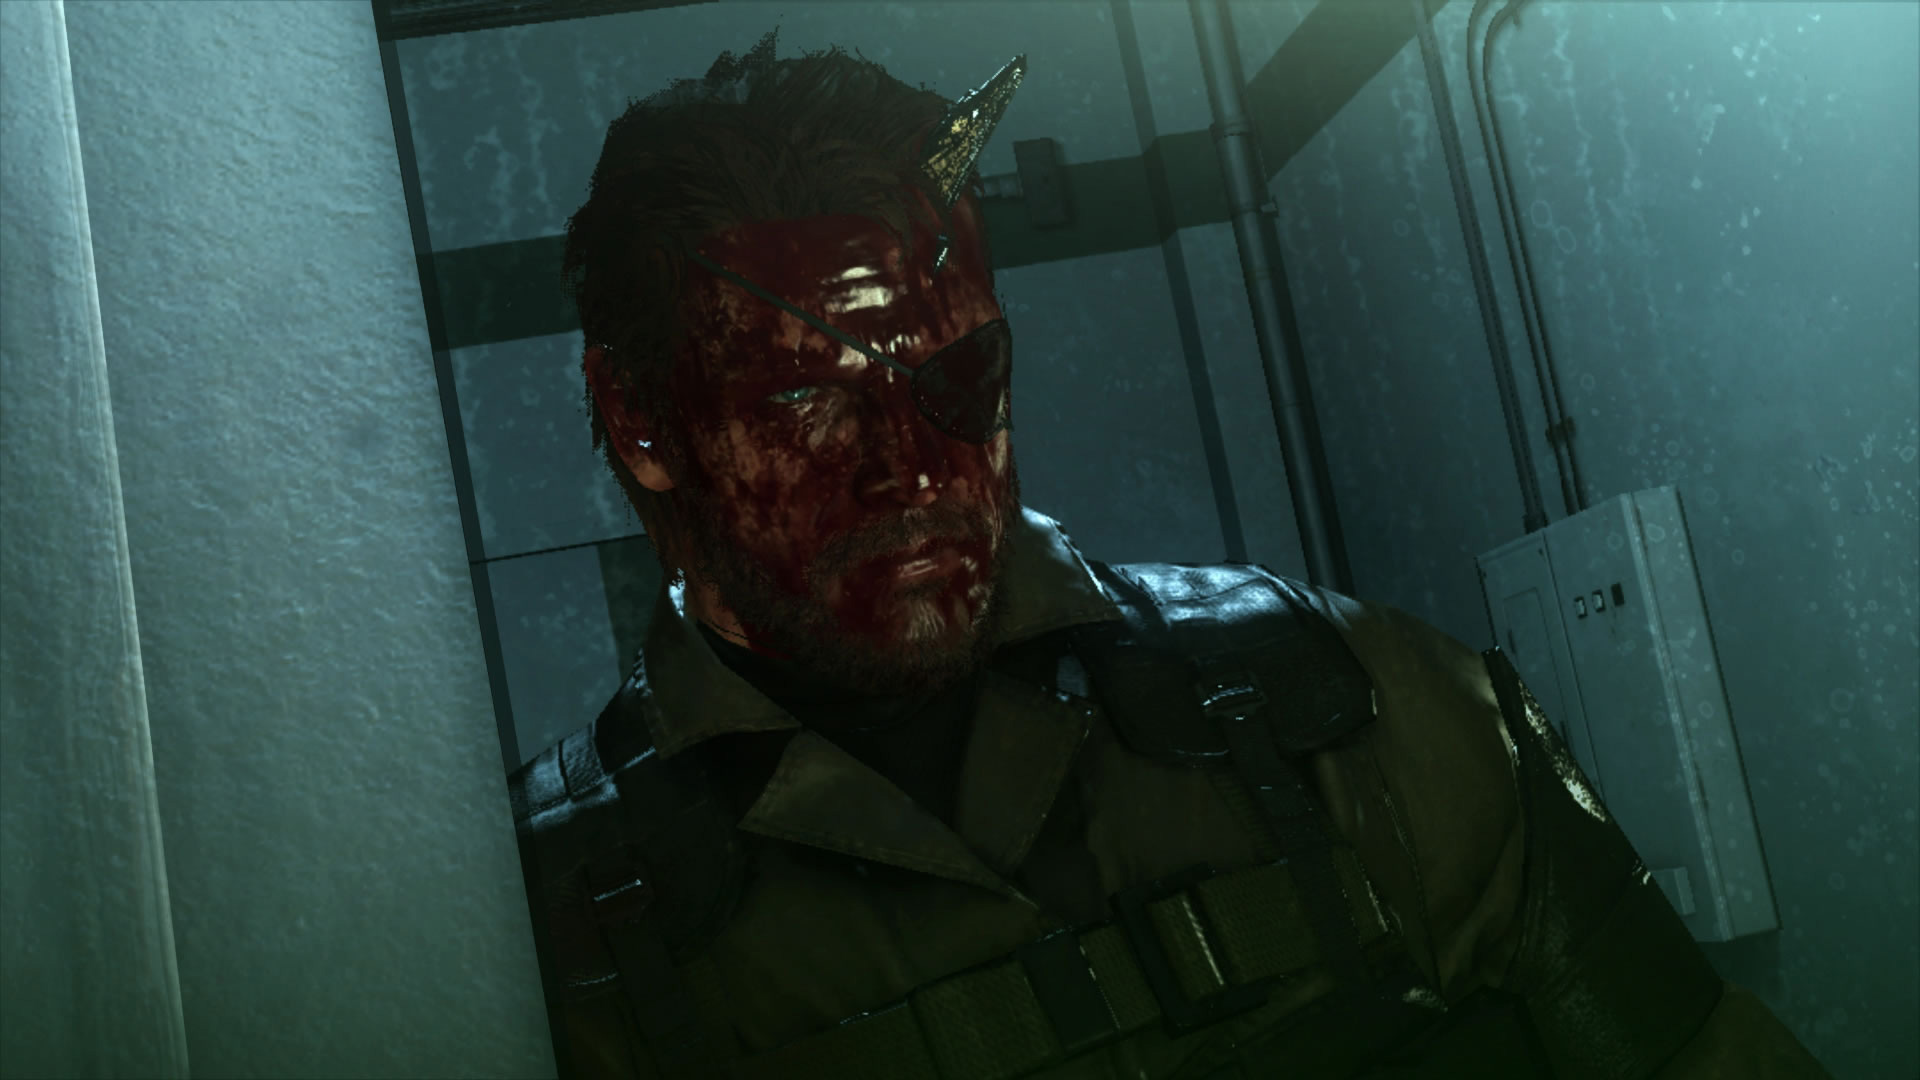 Metal-Gear-Solid-V-The-Phantom-Pain-E3-2015-Screen-Big-Boss-Mirror